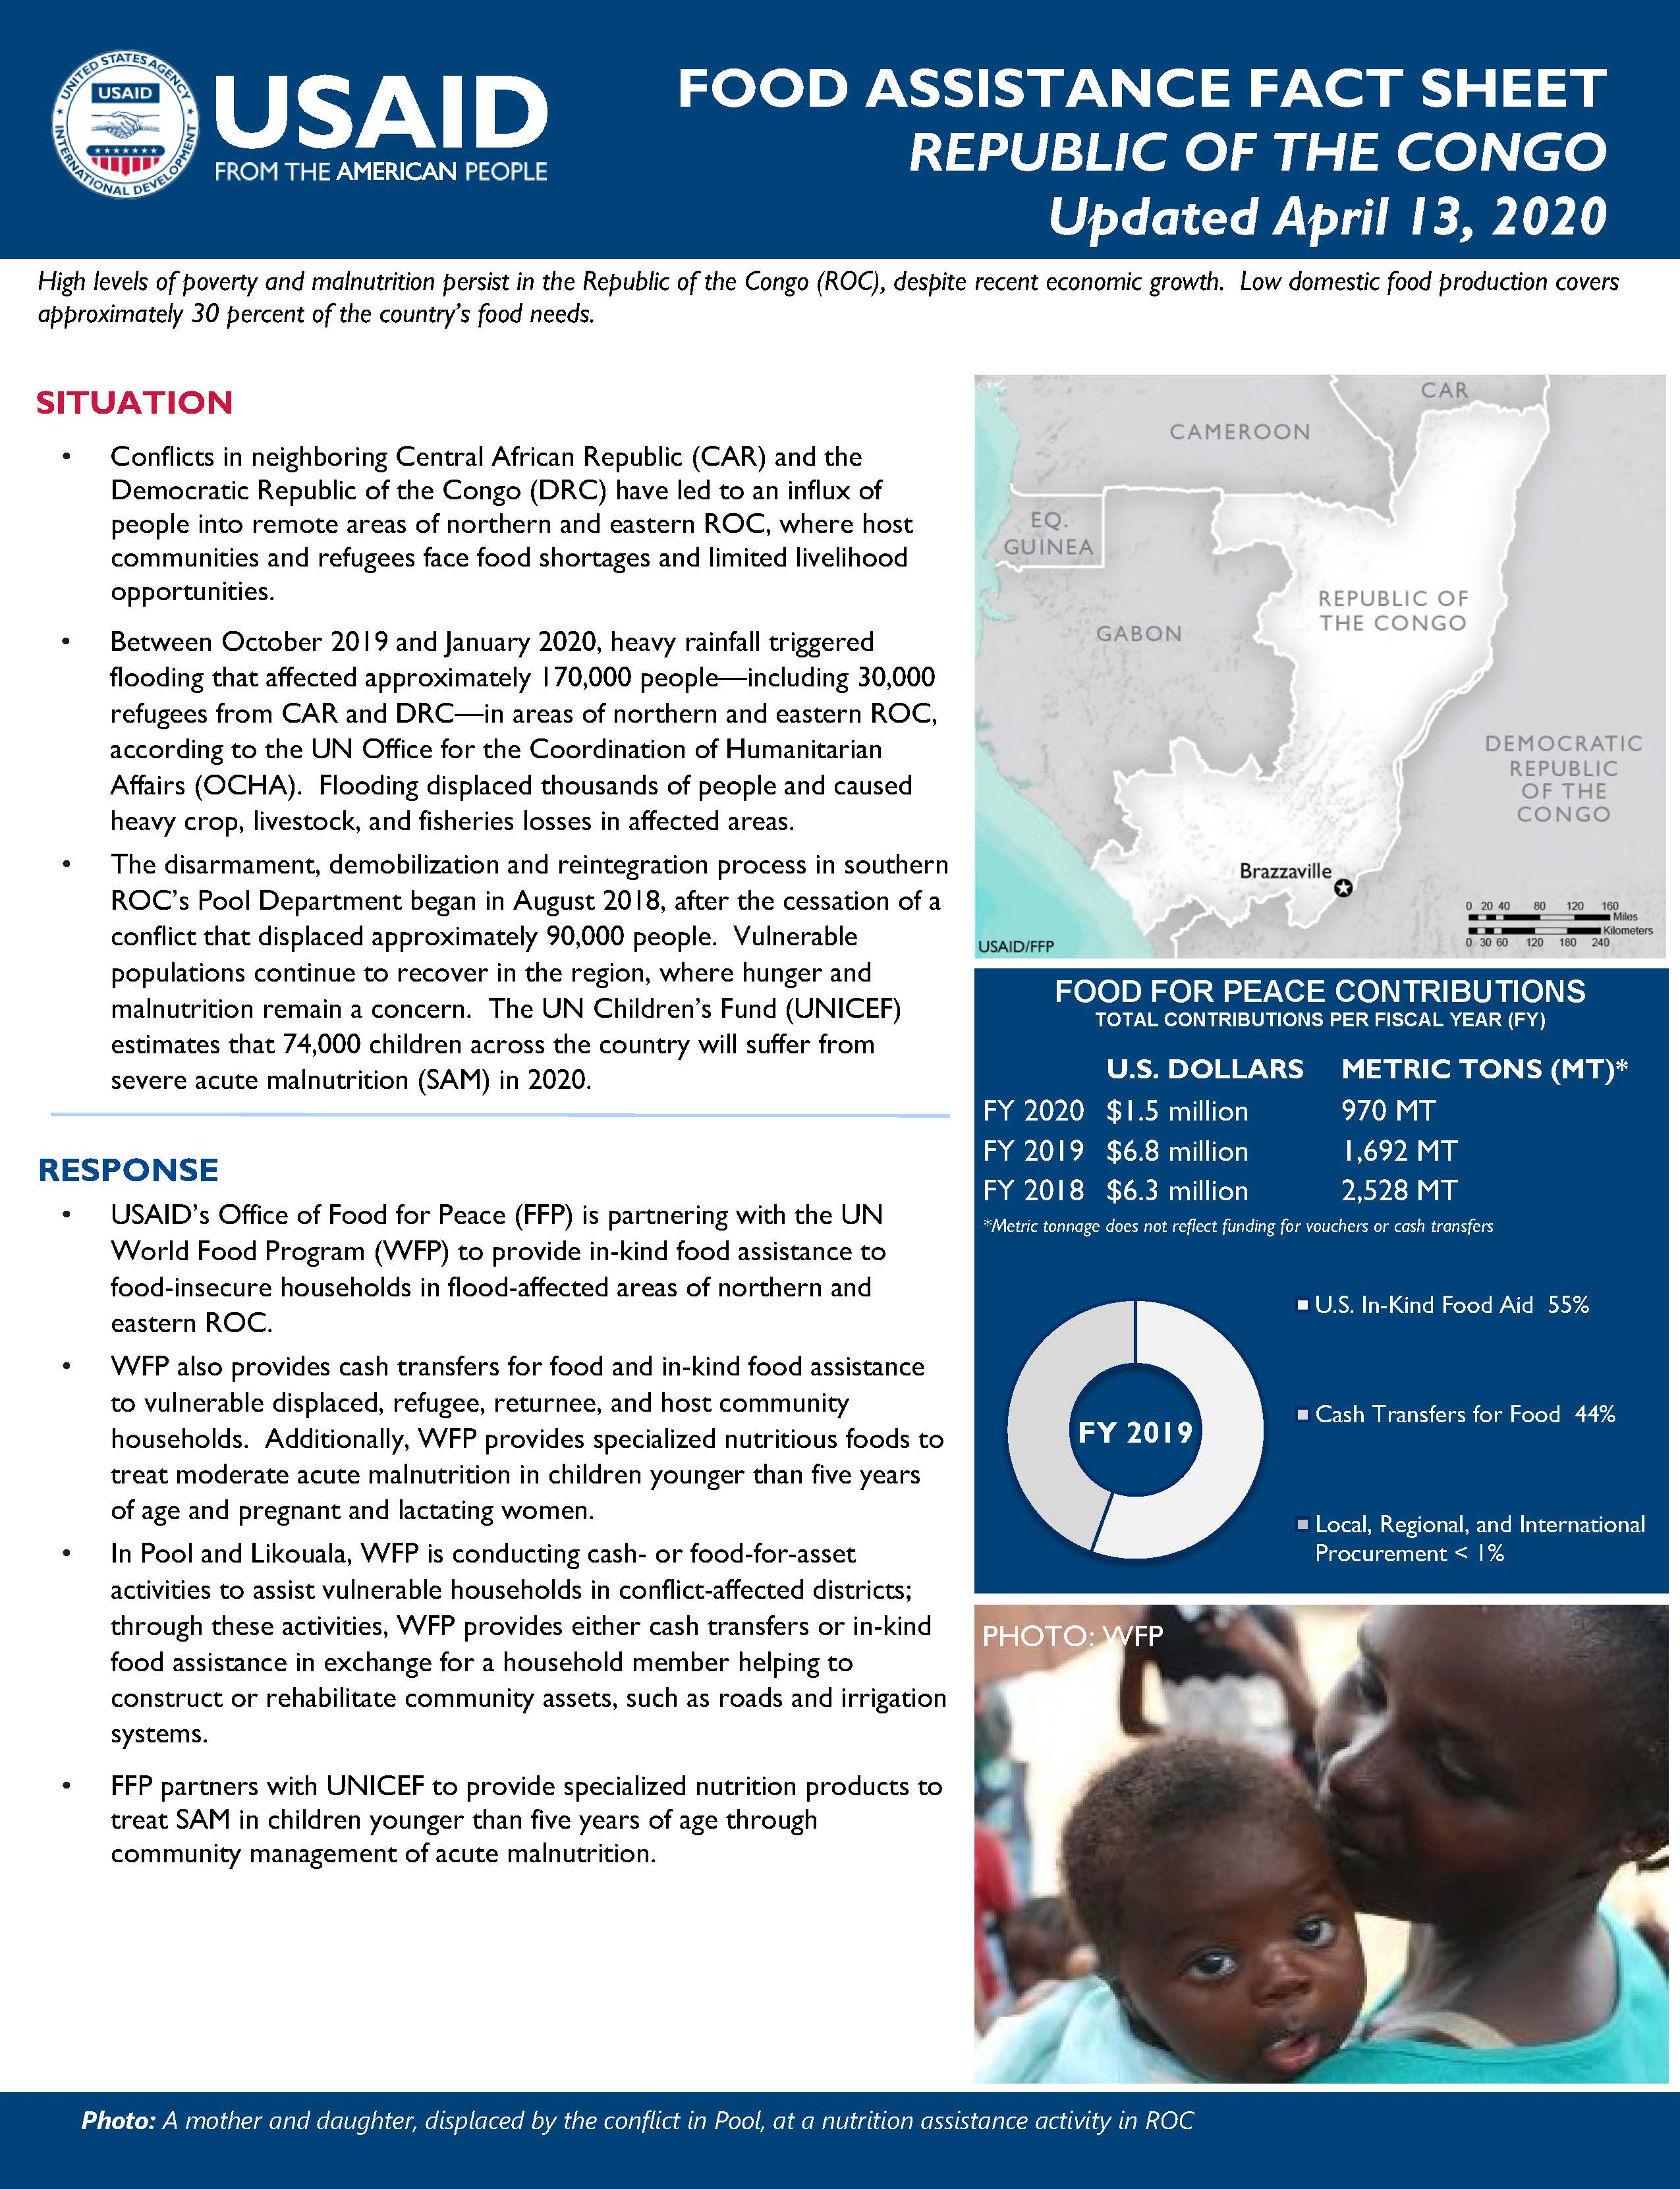 Food Assistance Fact Sheet - Republic of the Congo